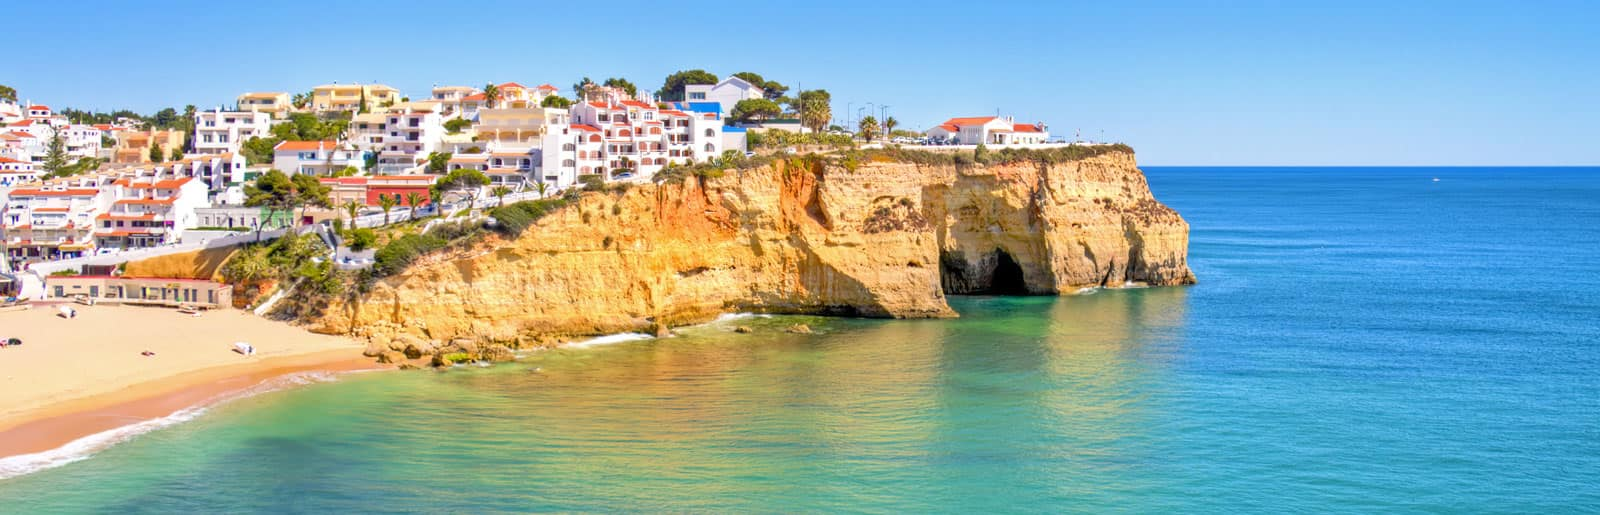 Hotels Algarve Portugal